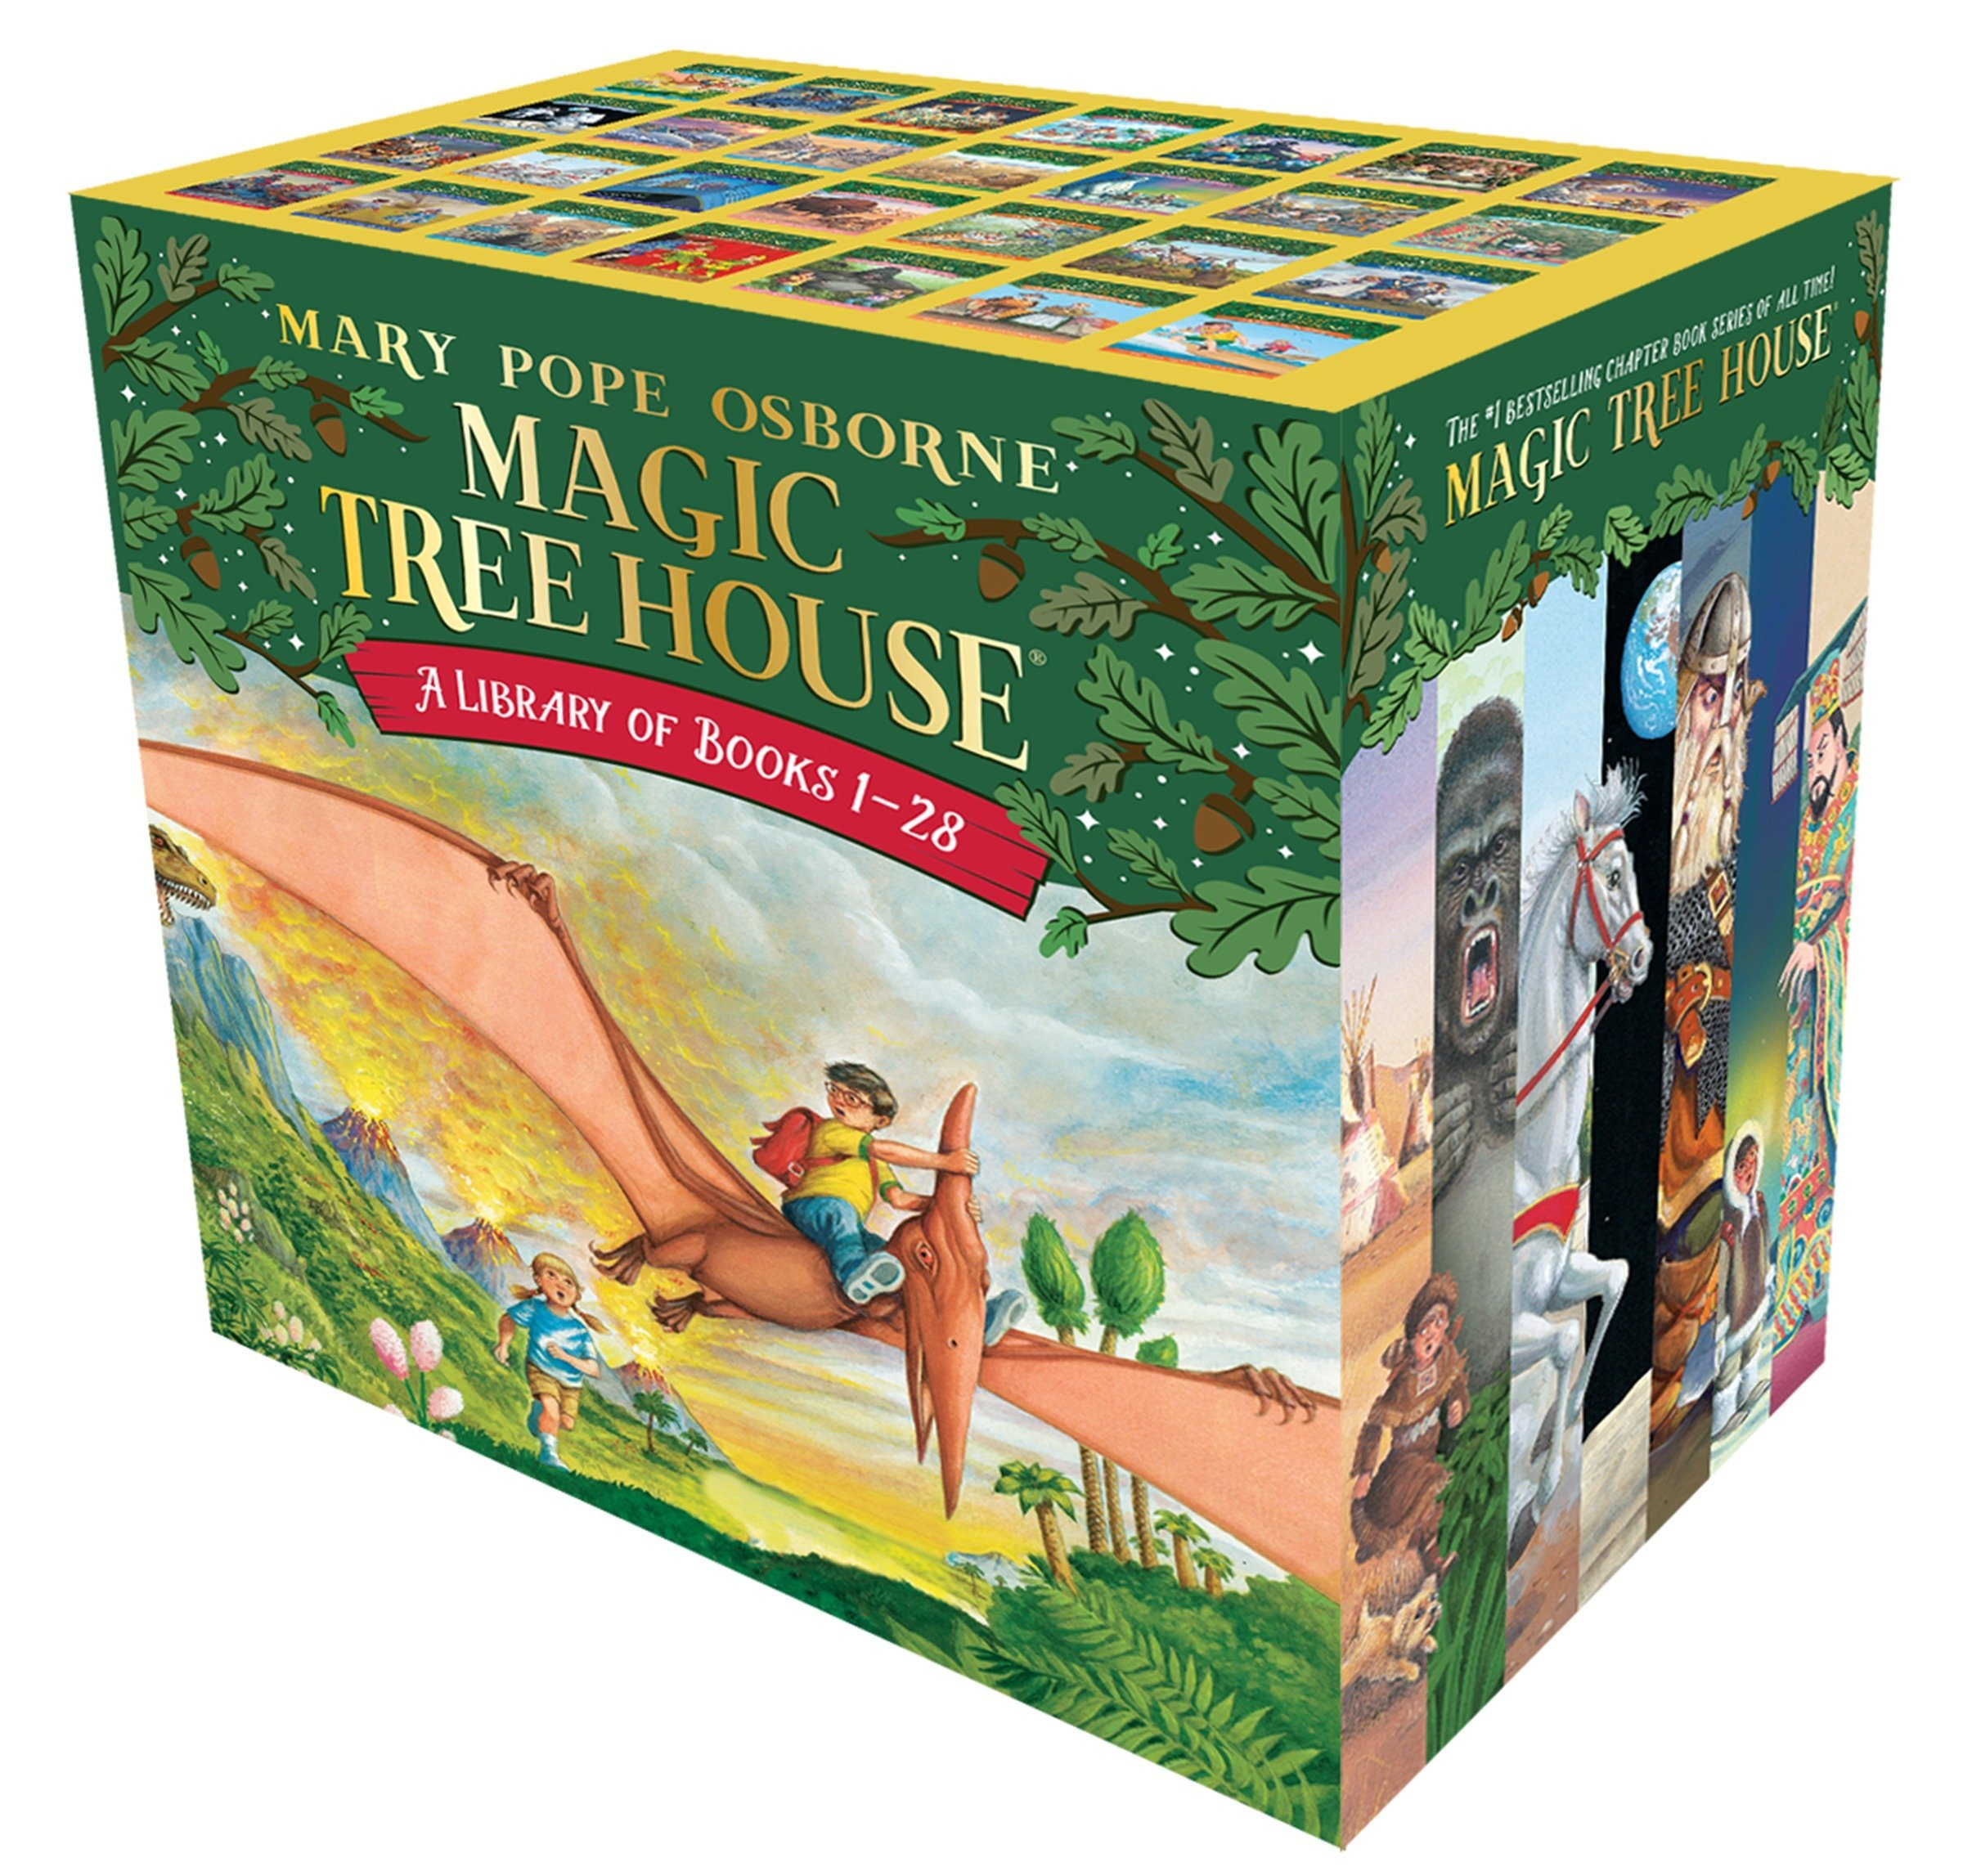 c5549add7 The Magic Tree House Library: Books 1-28 - Livros na Amazon Brasil-  9780375849916